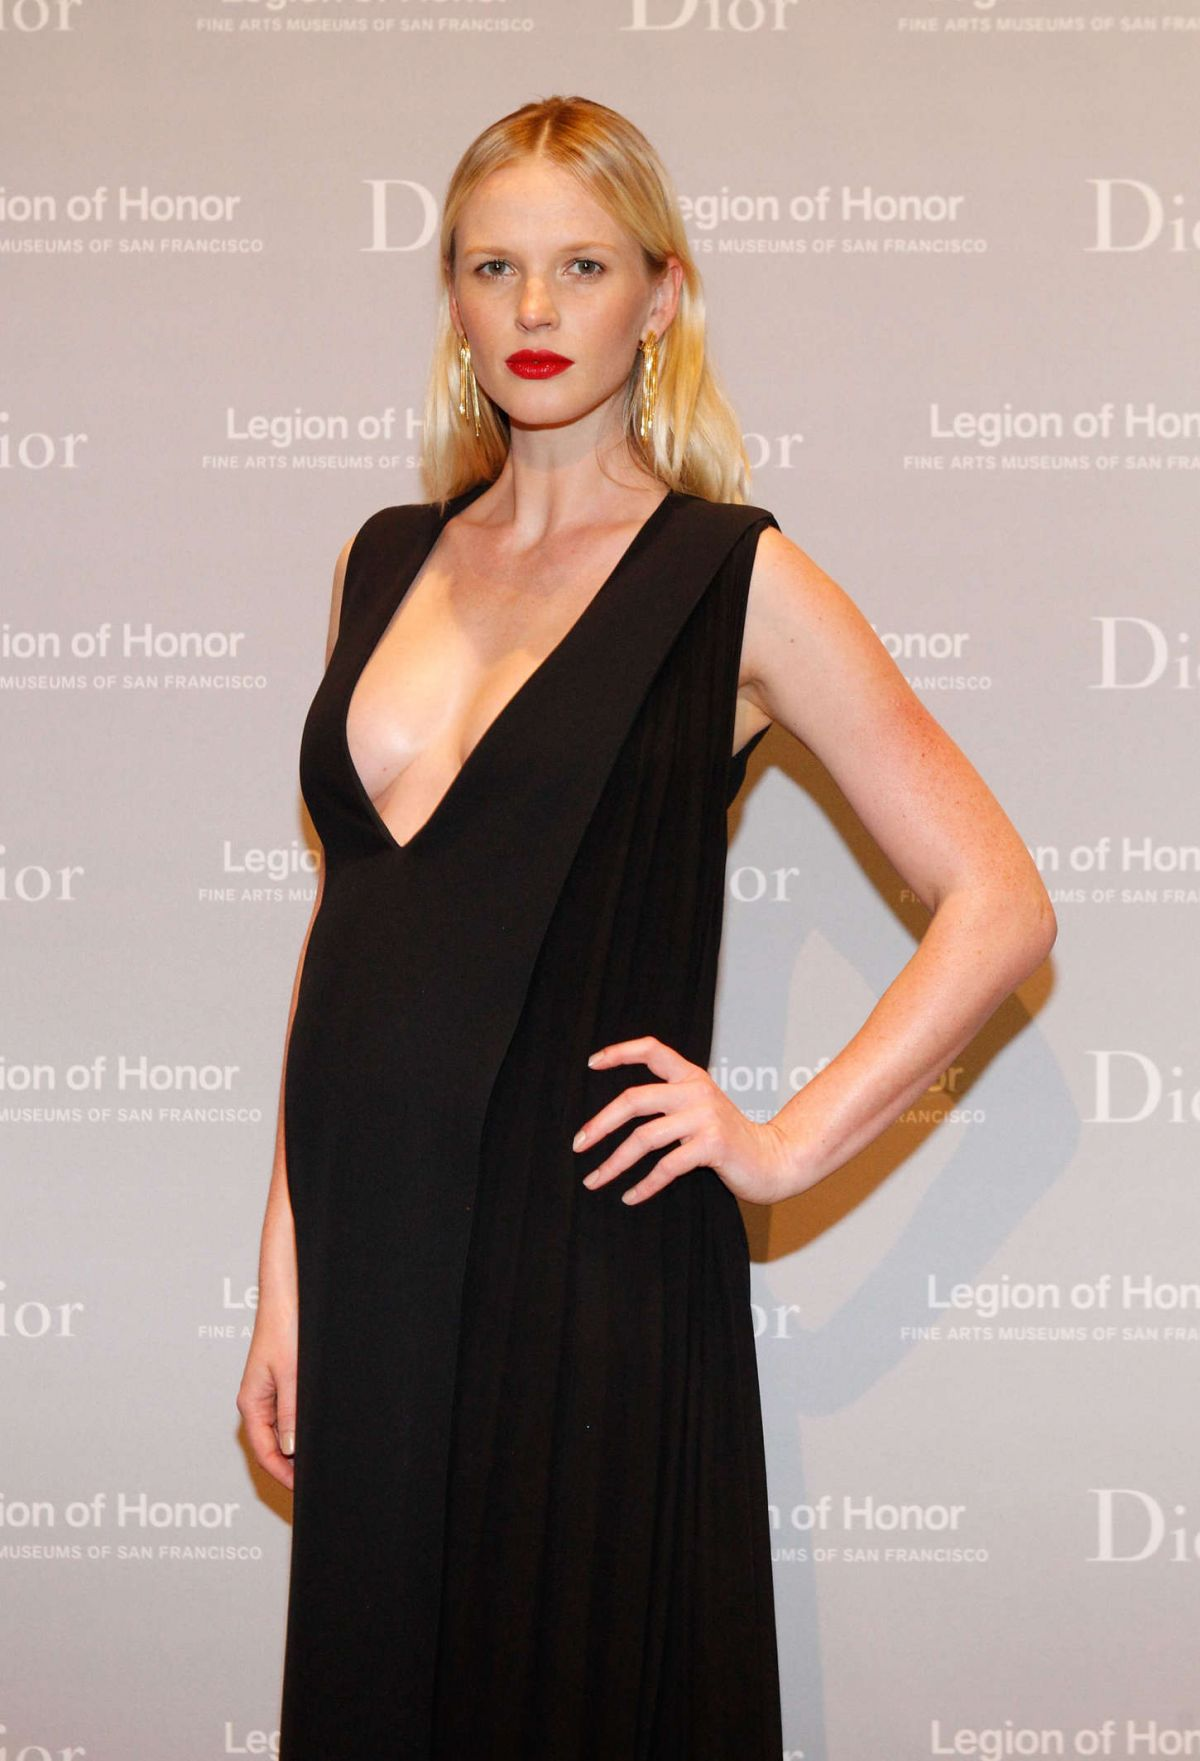 ANNE VYALITSYNA at 2015 Mid-winter Gala Presented by Dior in San Francisco